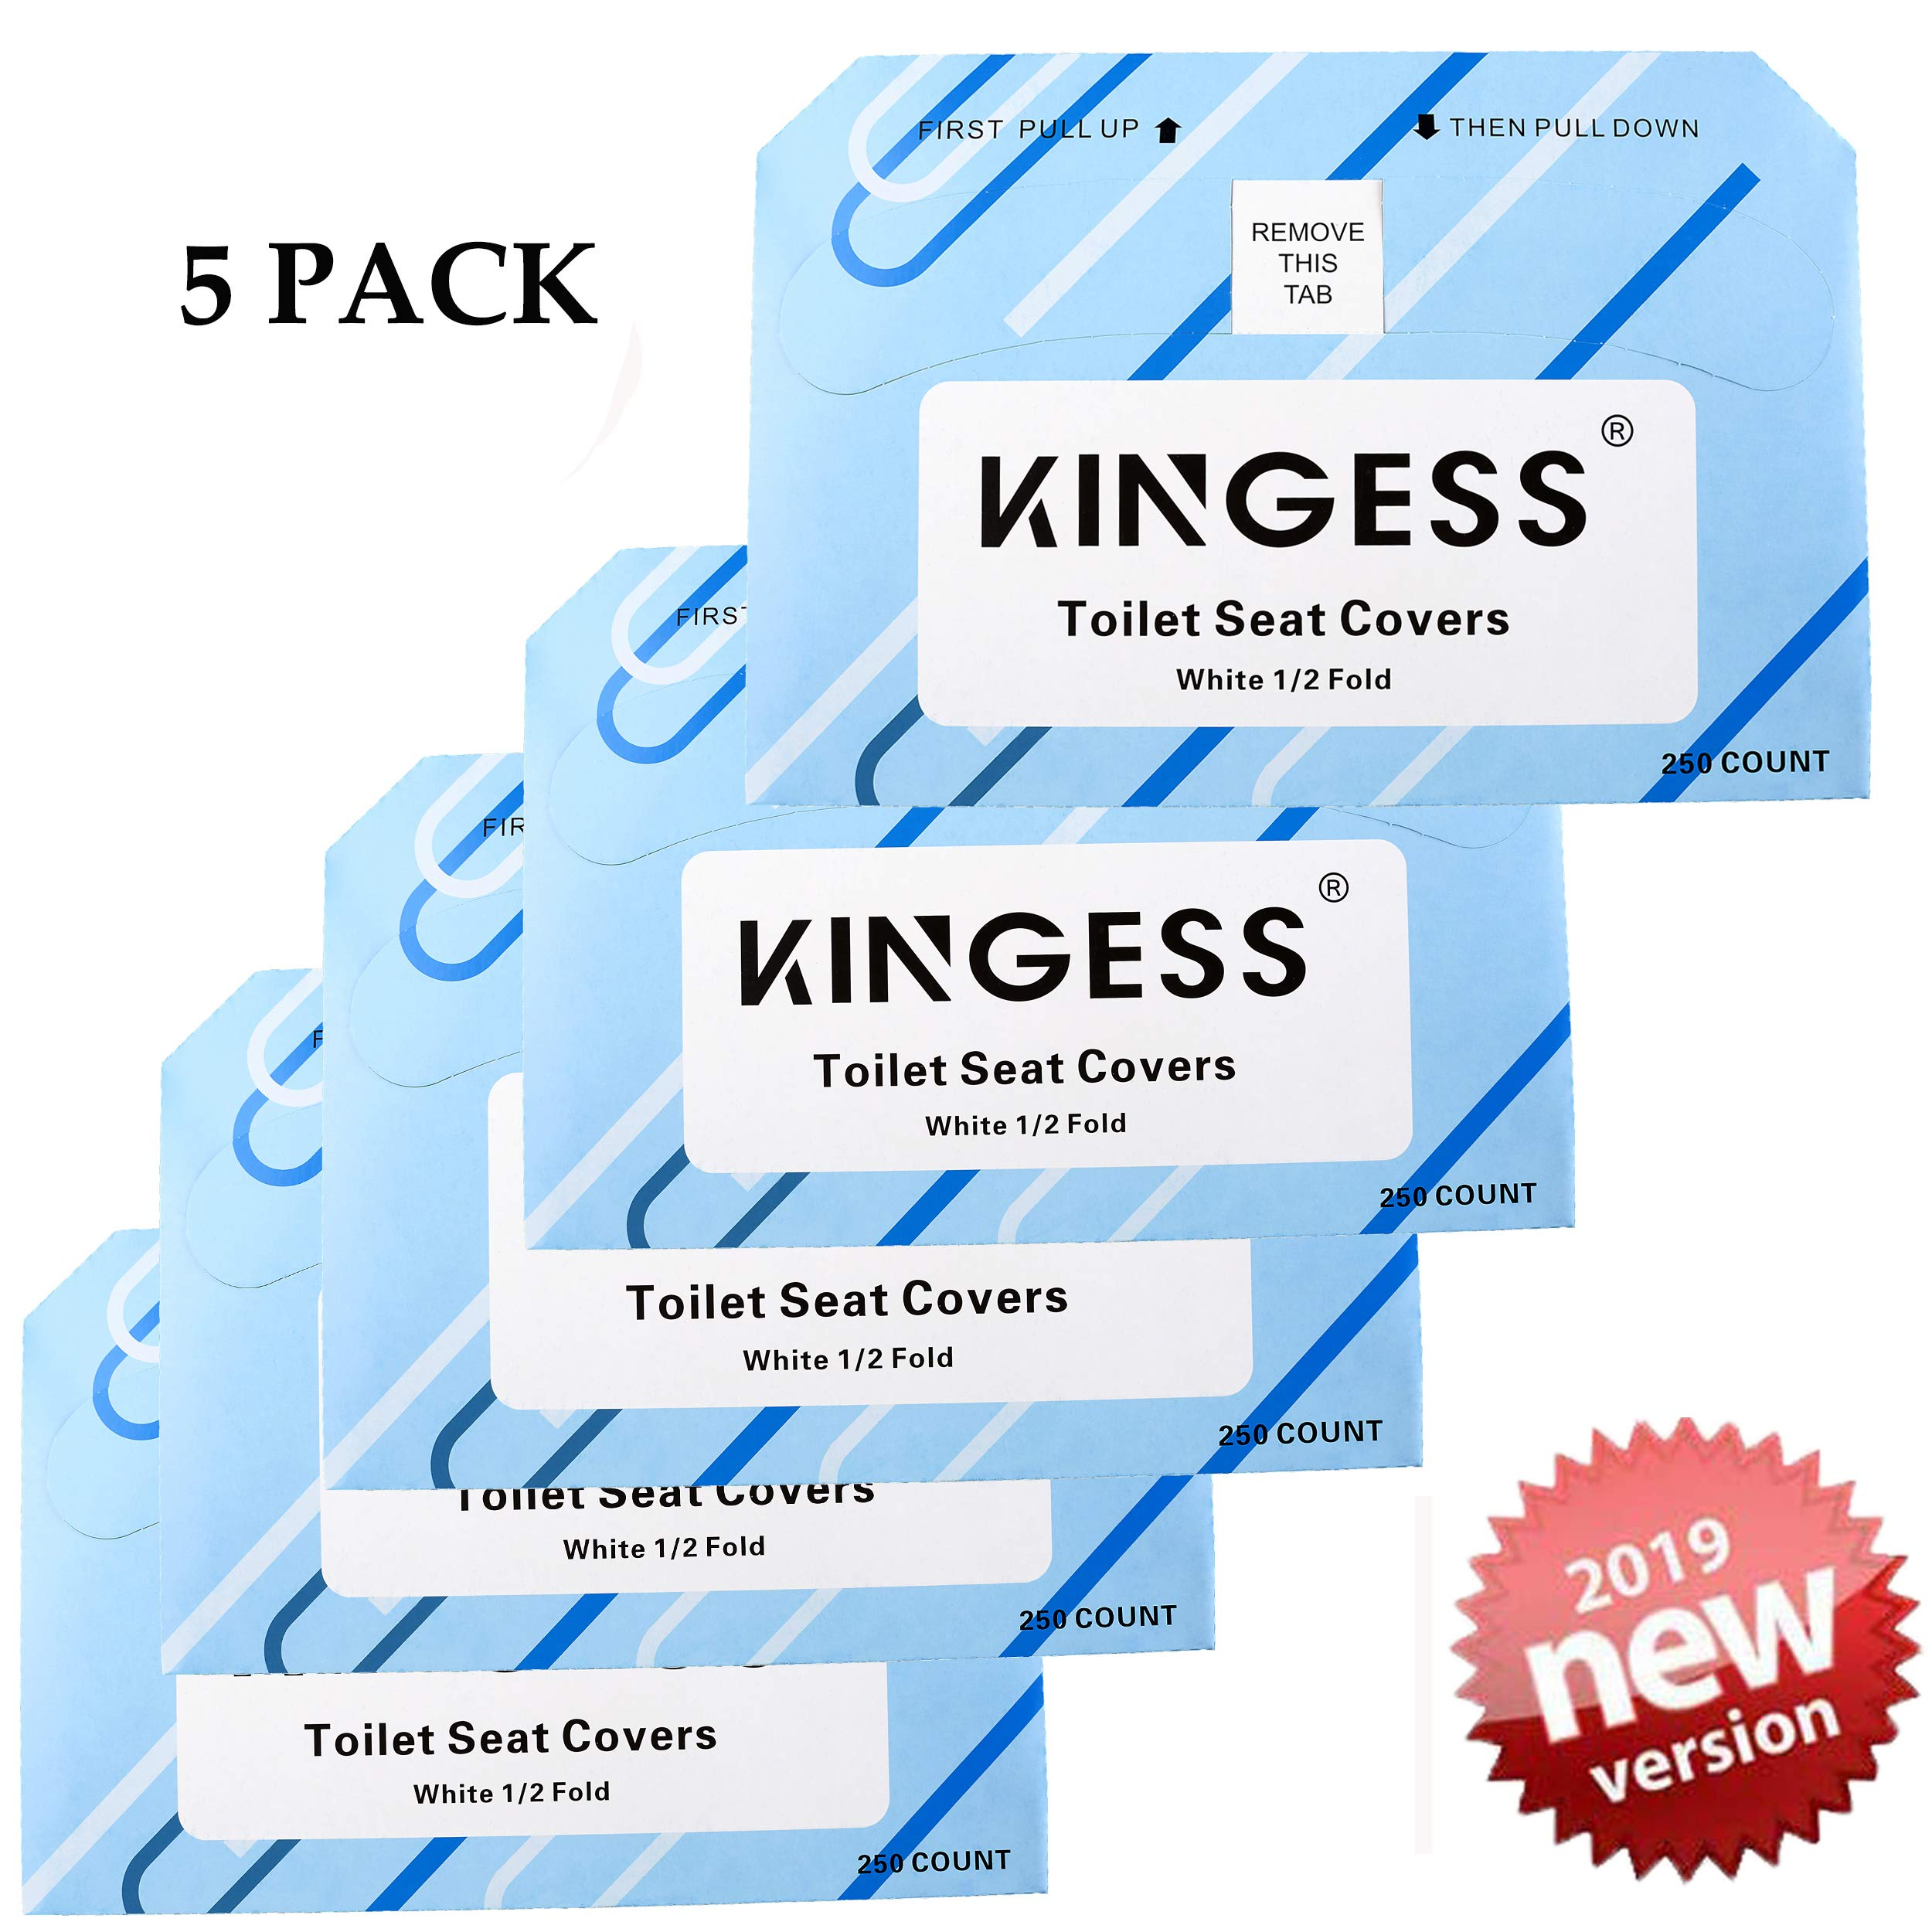 KINGESS Toilet Seat Covers - Disposable Virgin Paper Half-Fold Toilet Seat Cover Dispensers (5Pack(1250covers))